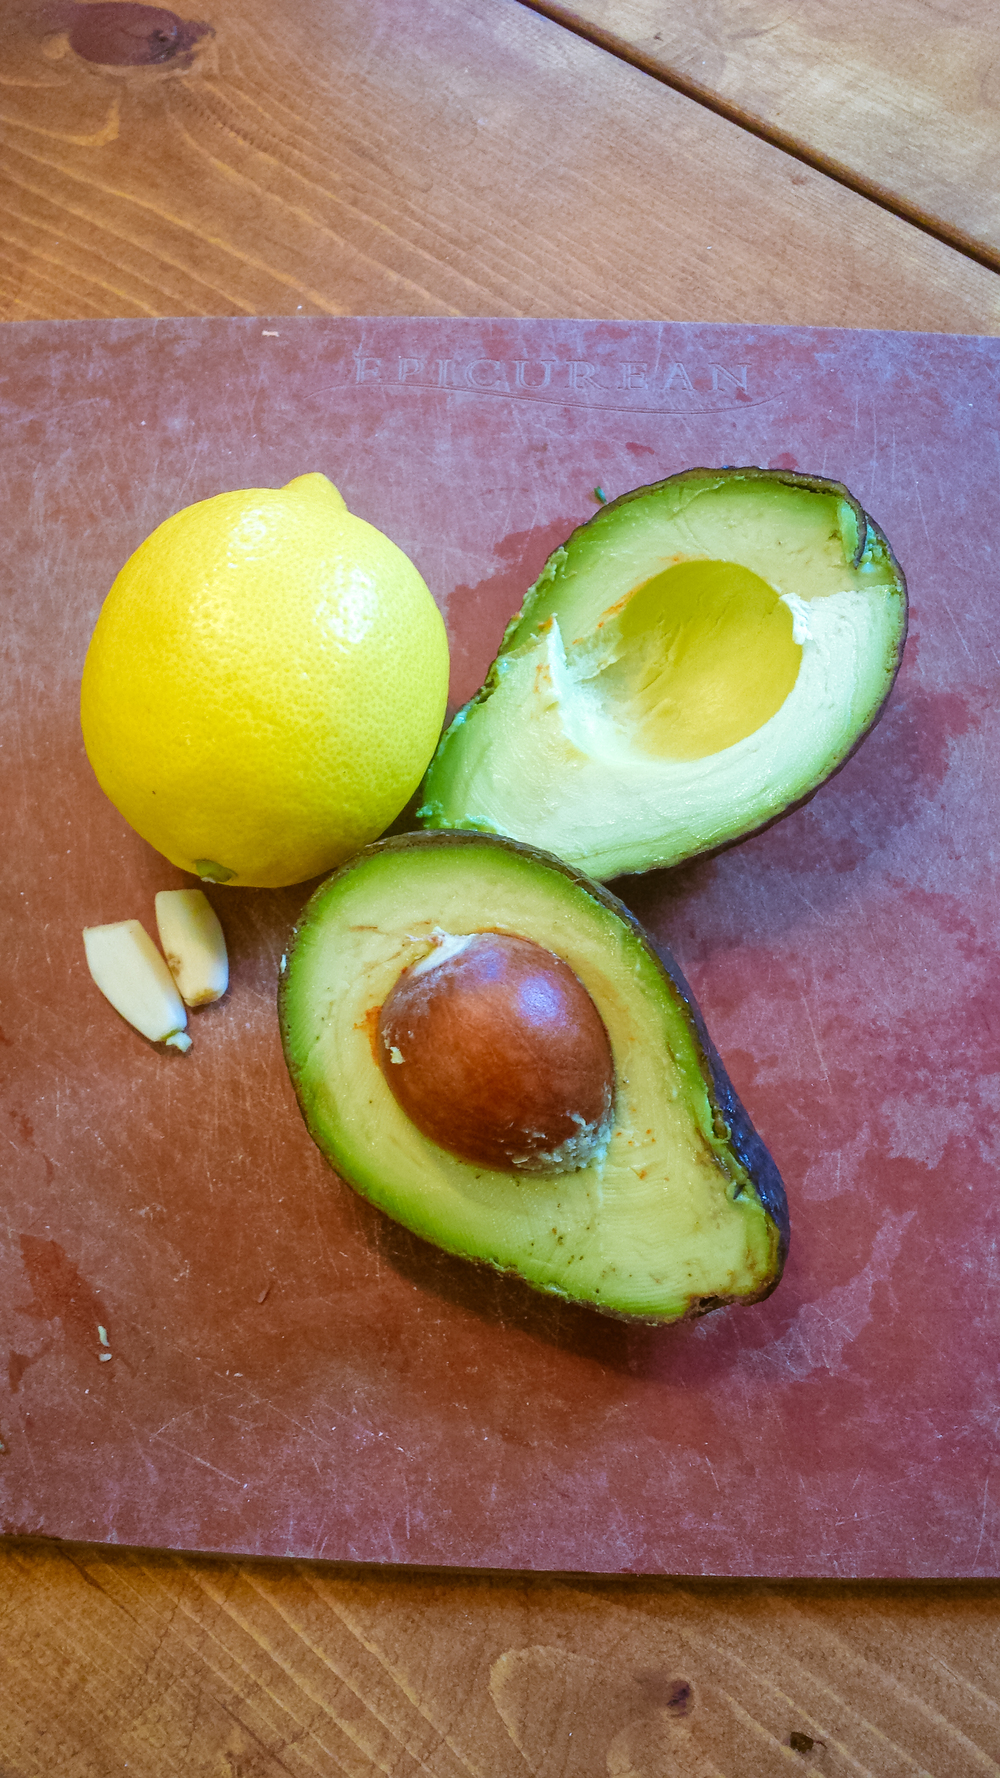 Ingredients for easy avocado spread